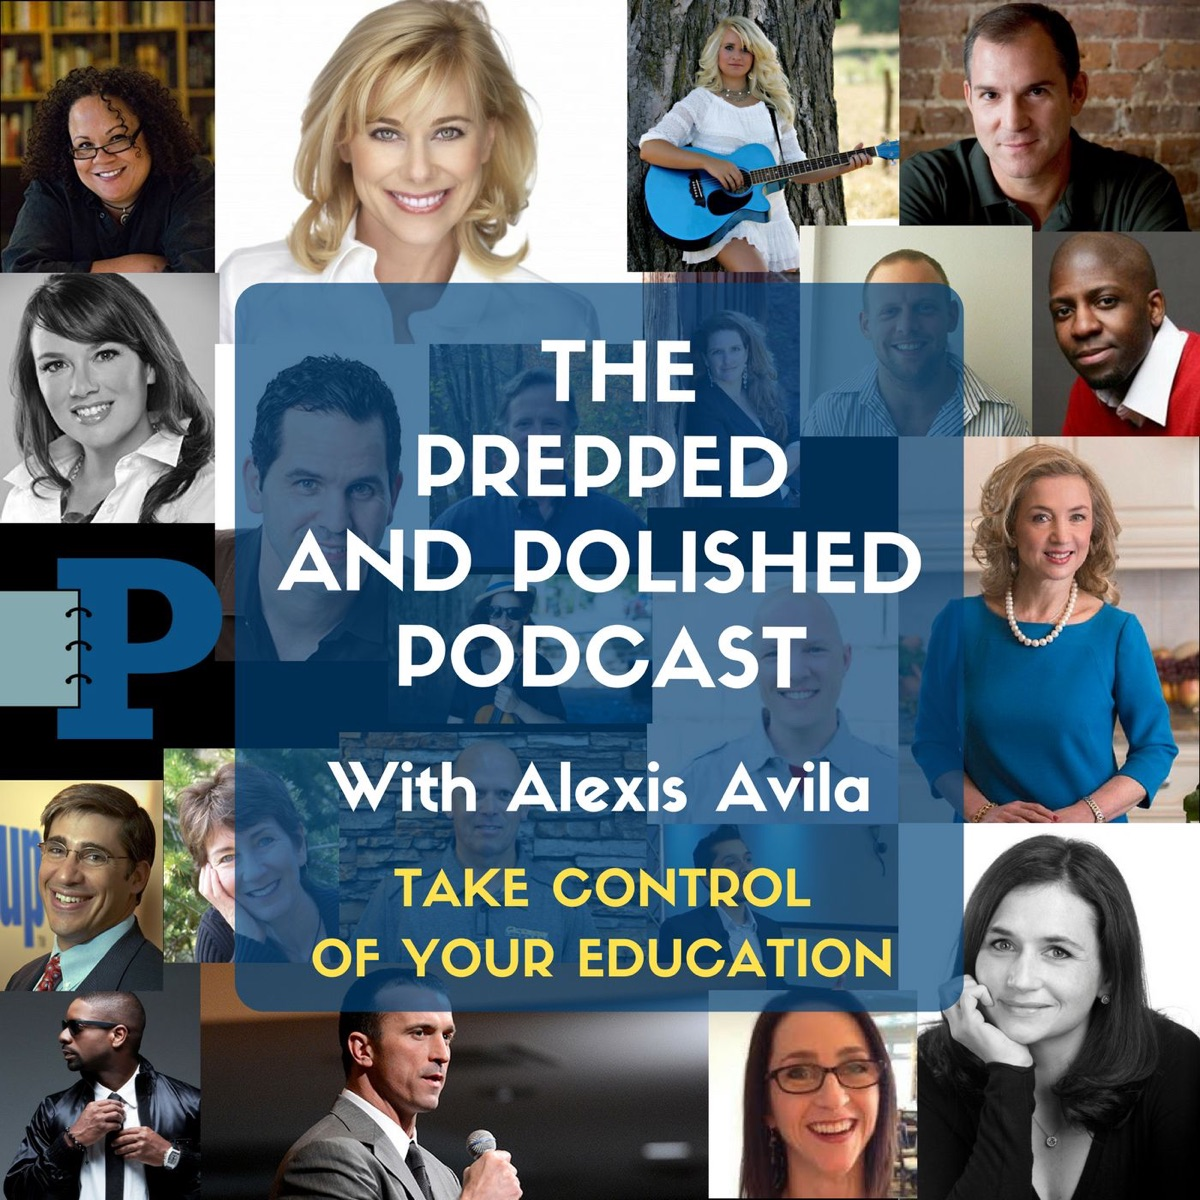 The Prepped and Polished Podcast